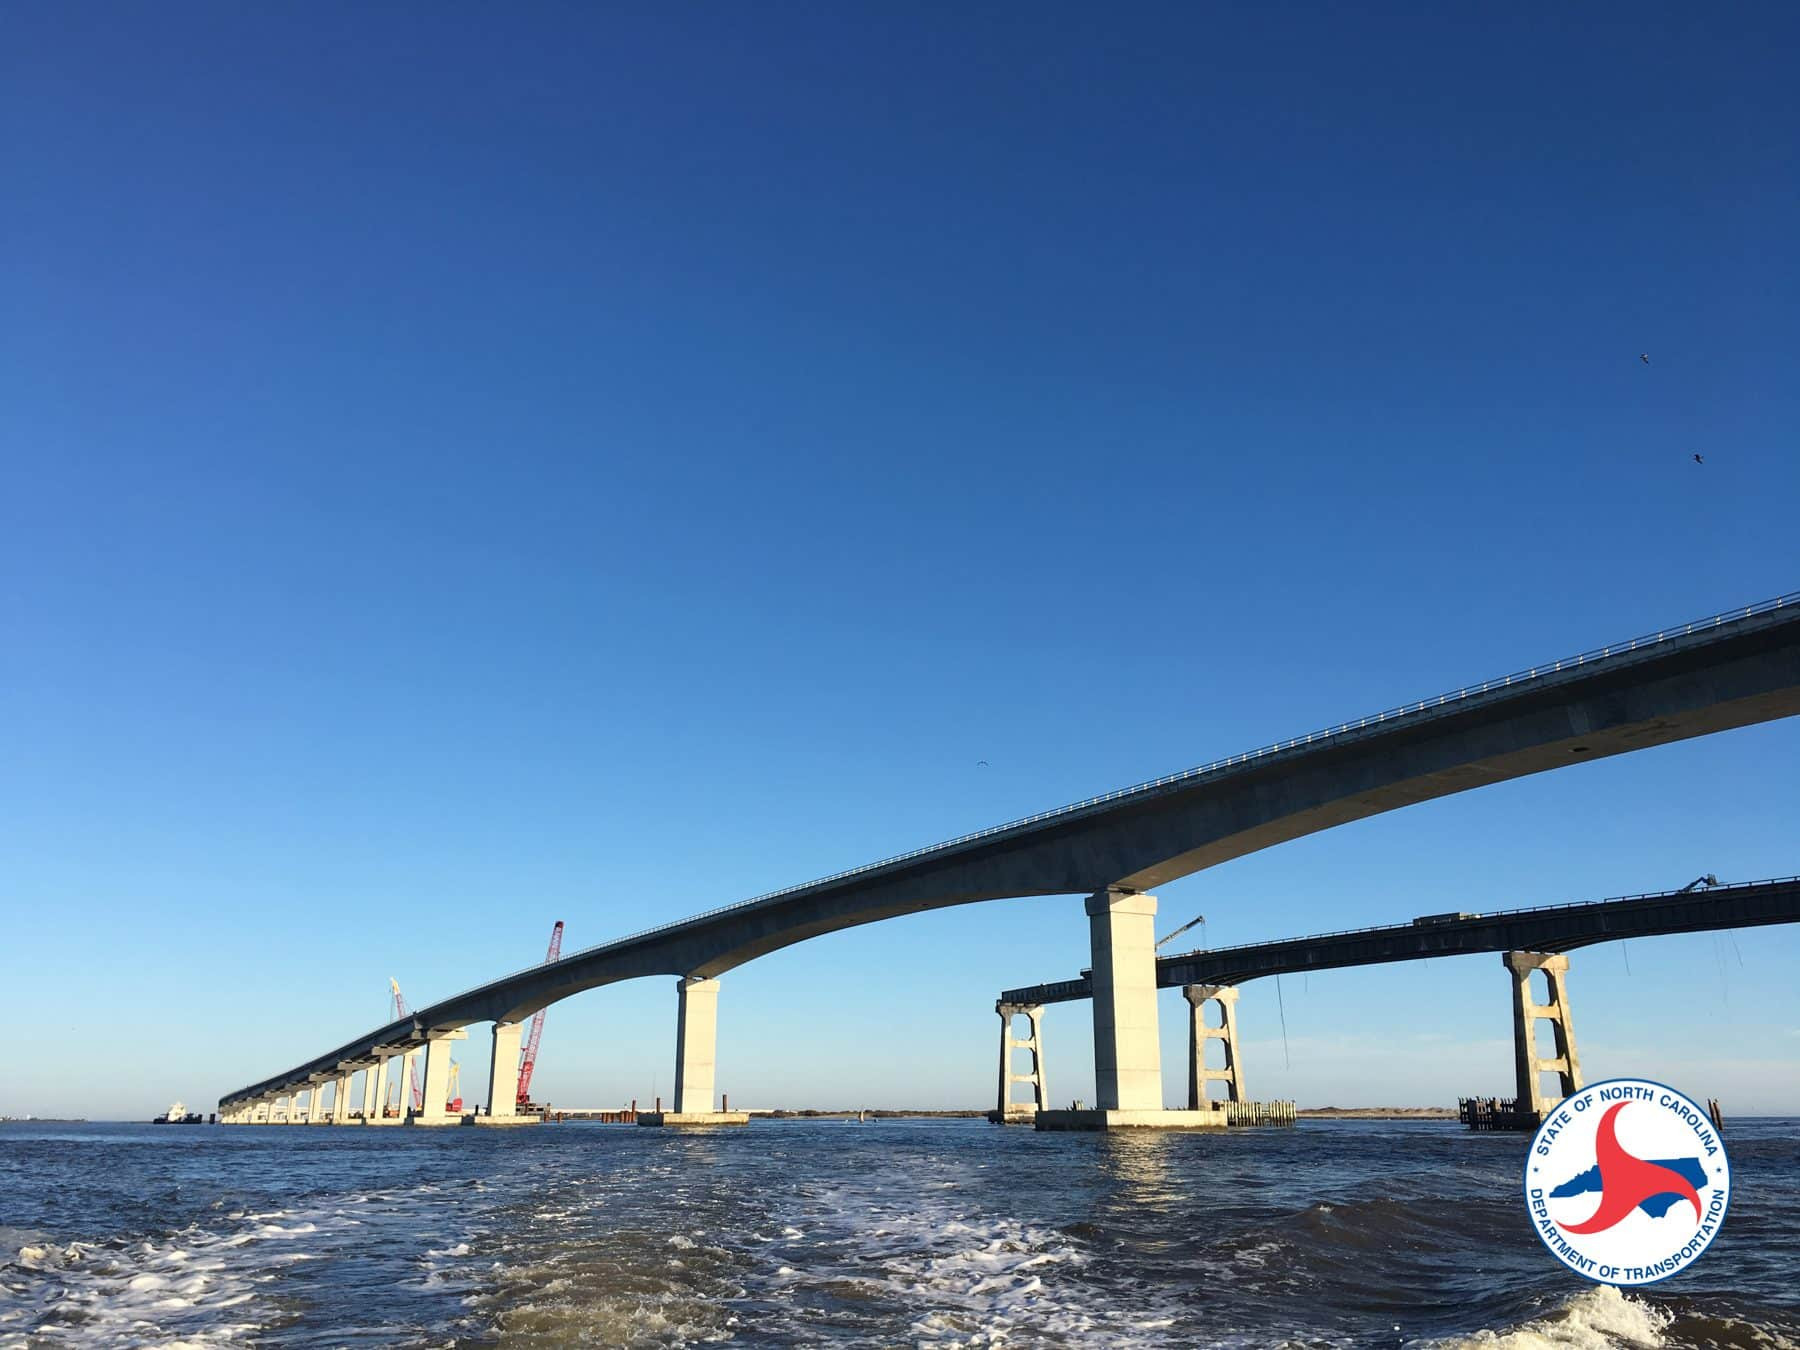 OBX bridge inspected by Skydio drones for first time